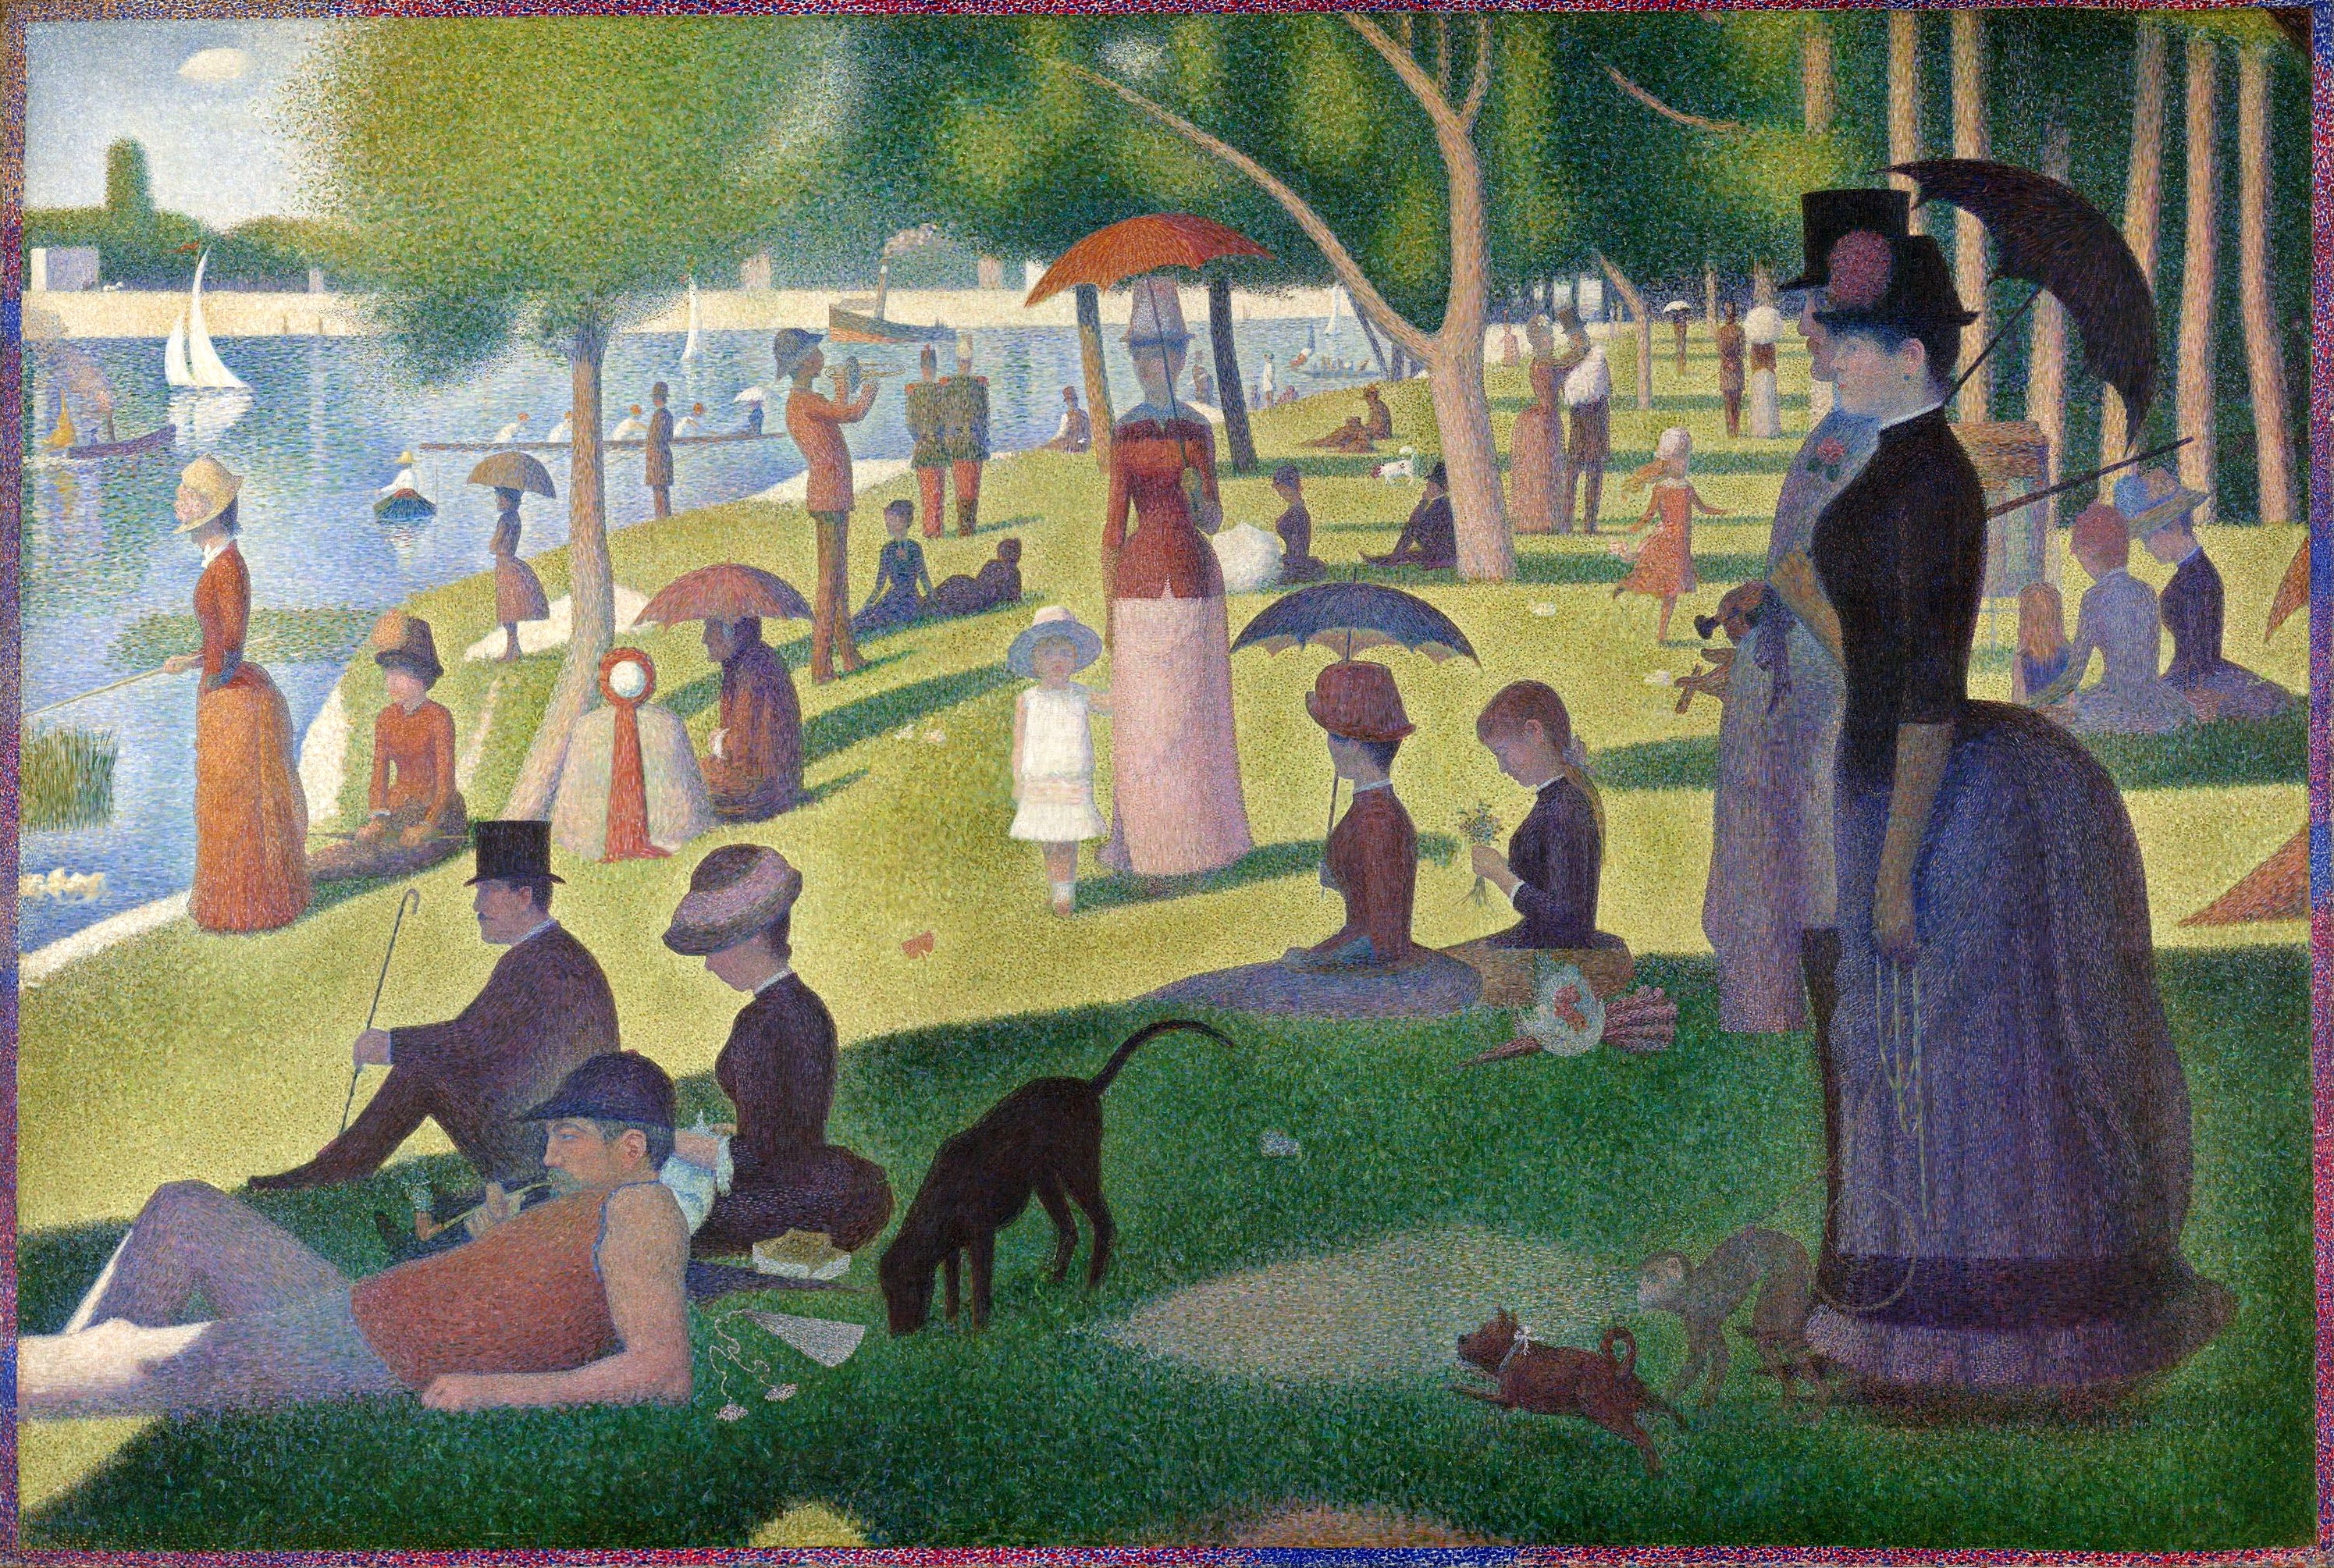 Do you see a Broadway musical in this picture? Georges Seurat's 1884 painting 'A Sunday on La Grande Jatte' was the inspiration for Stephen Sondheim and James Lapine's 'Sunday in the Park with George,' on stage at Pittsburgh Playhouse. (image: Art Institute of Chicago)